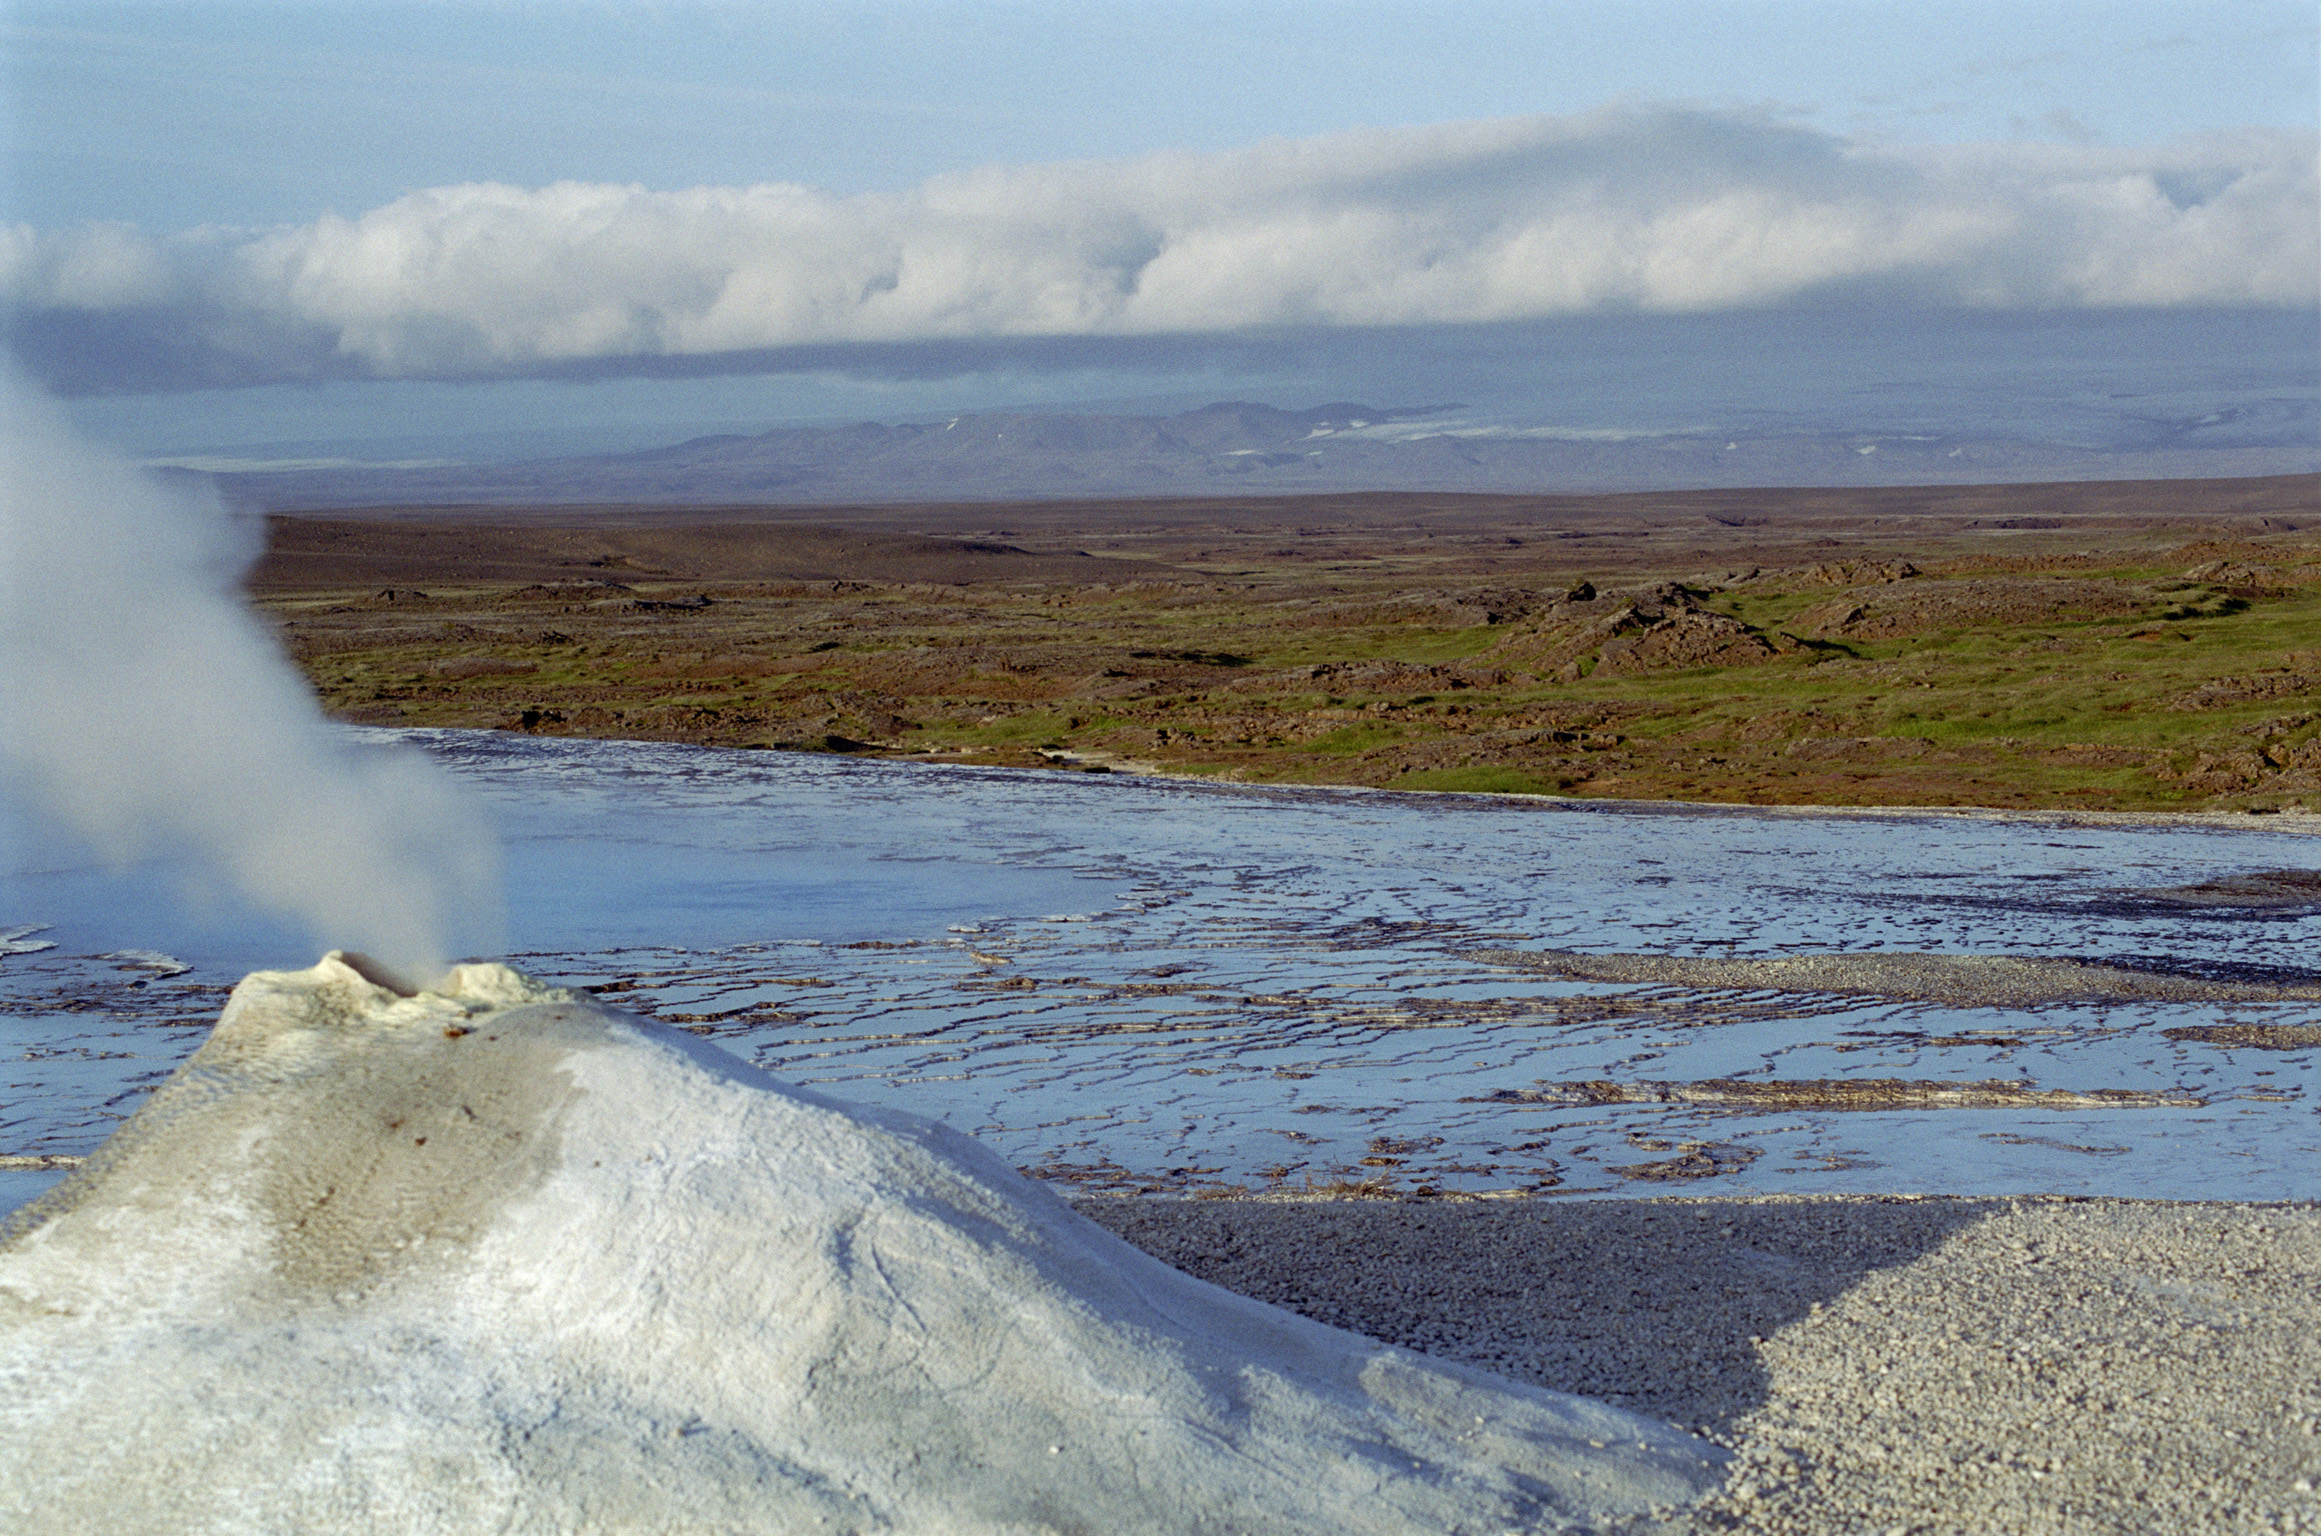 Fumerole emitting steam in Iceland in Hveravellir releasing volcanic pressure from below the earths surface